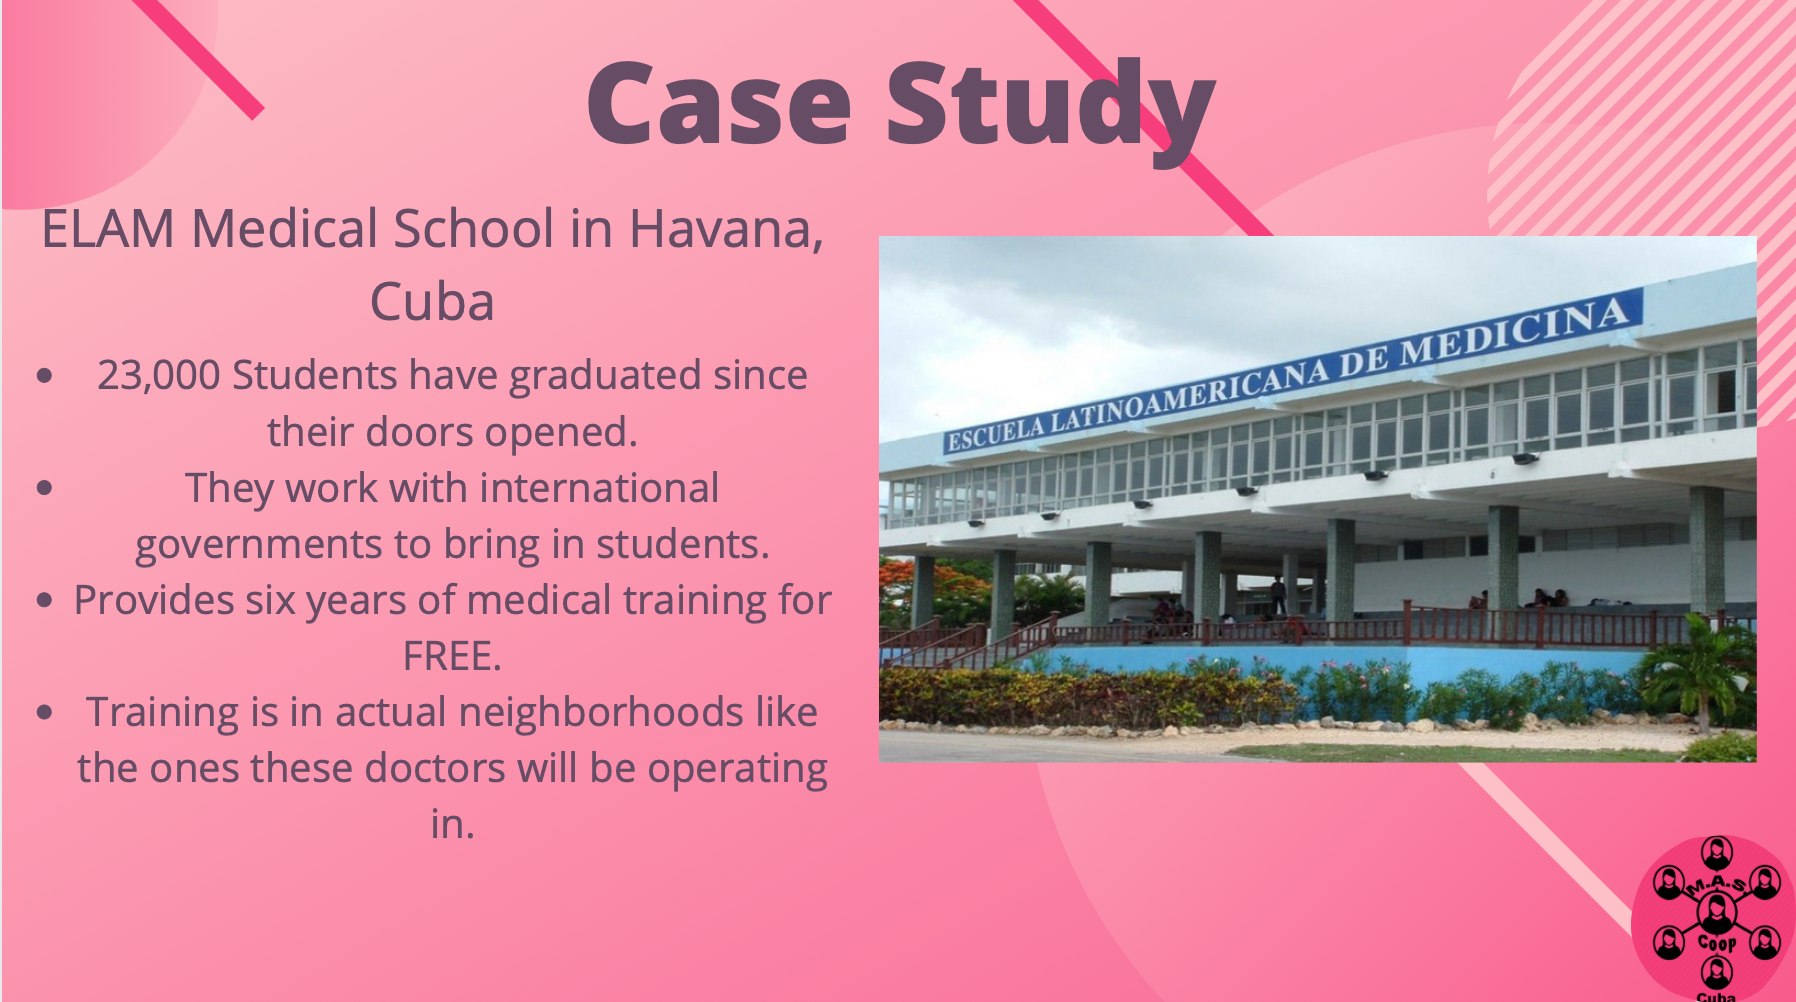 Here is a case study that represents a potential partnership with a medical school in Havana, Cuba.